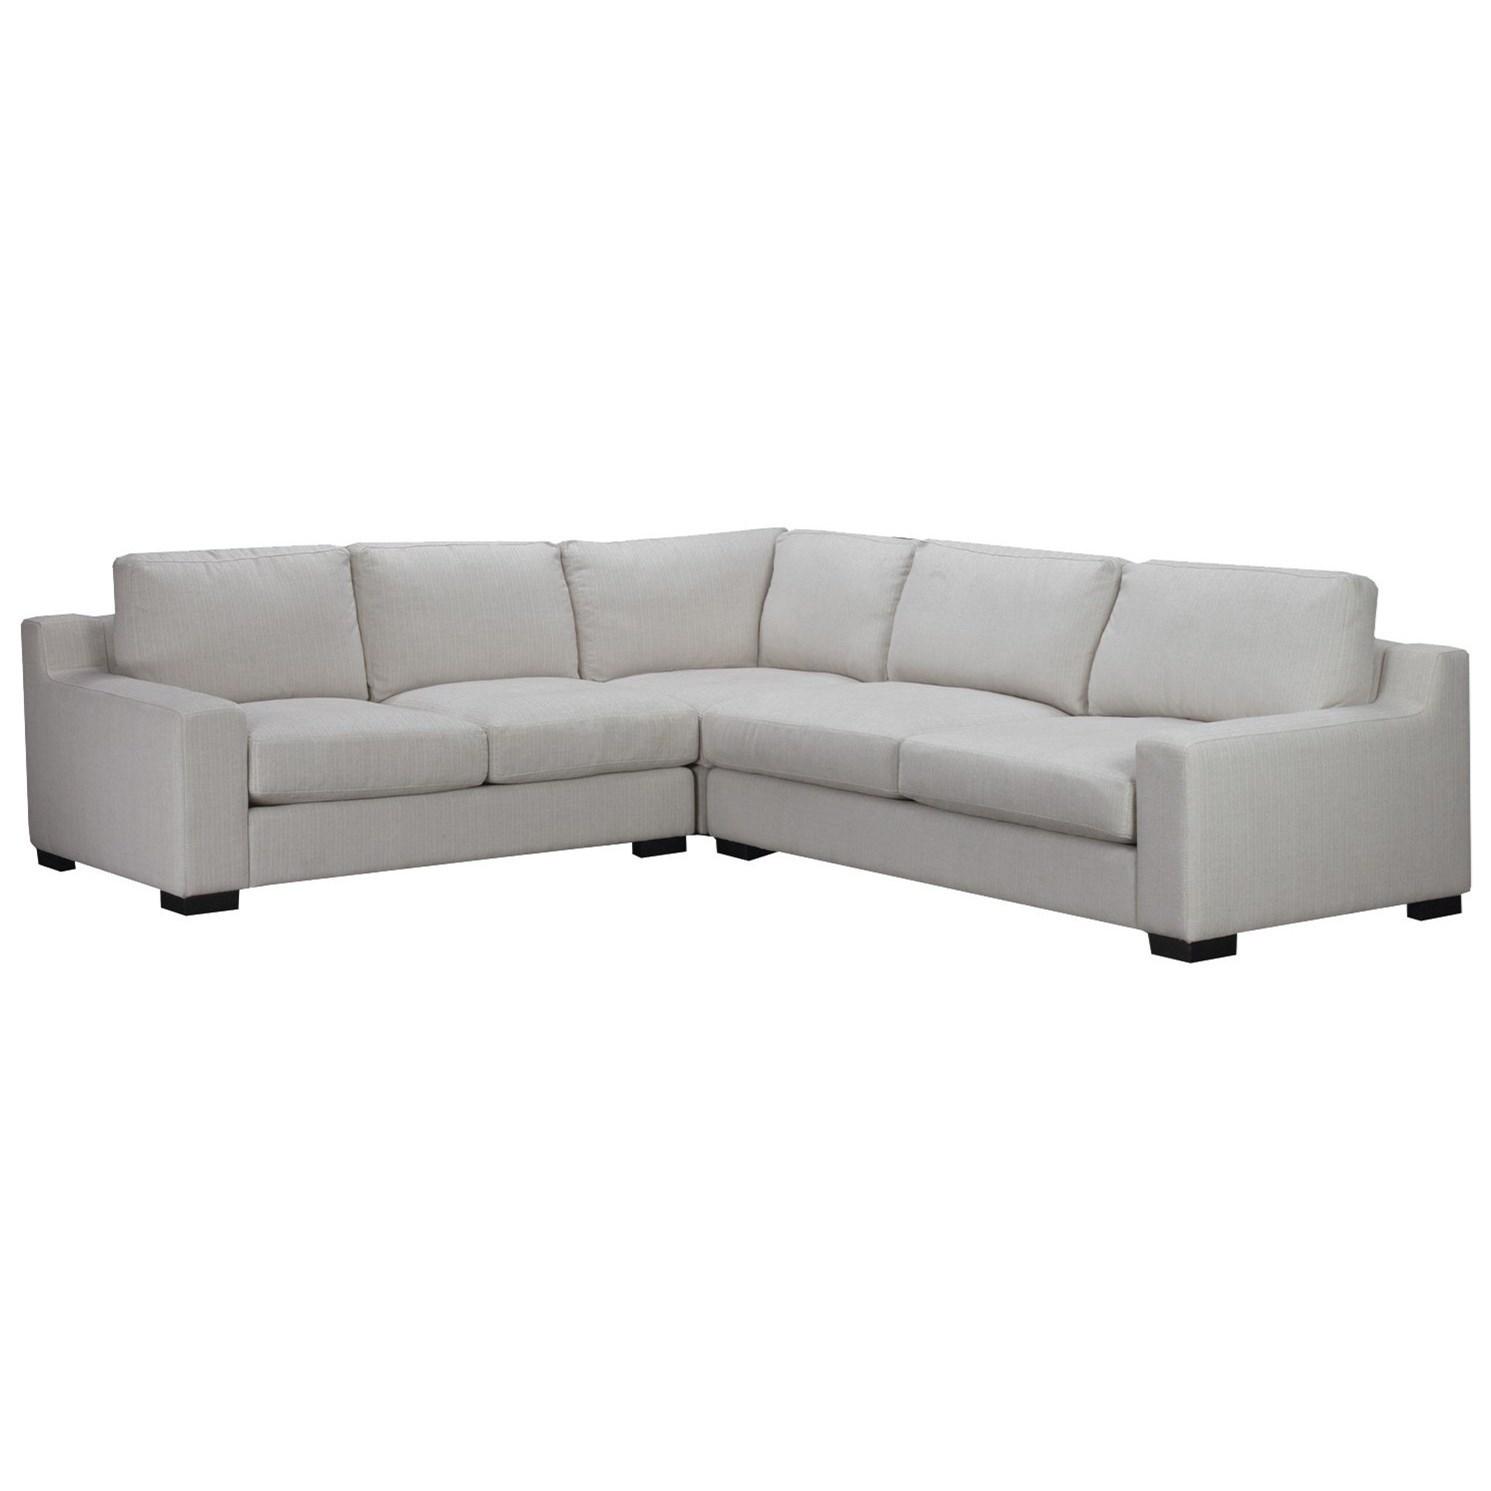 Dimensiones Sofa Dimensiones Sofa Chaise Longue Best Image Is Loading With